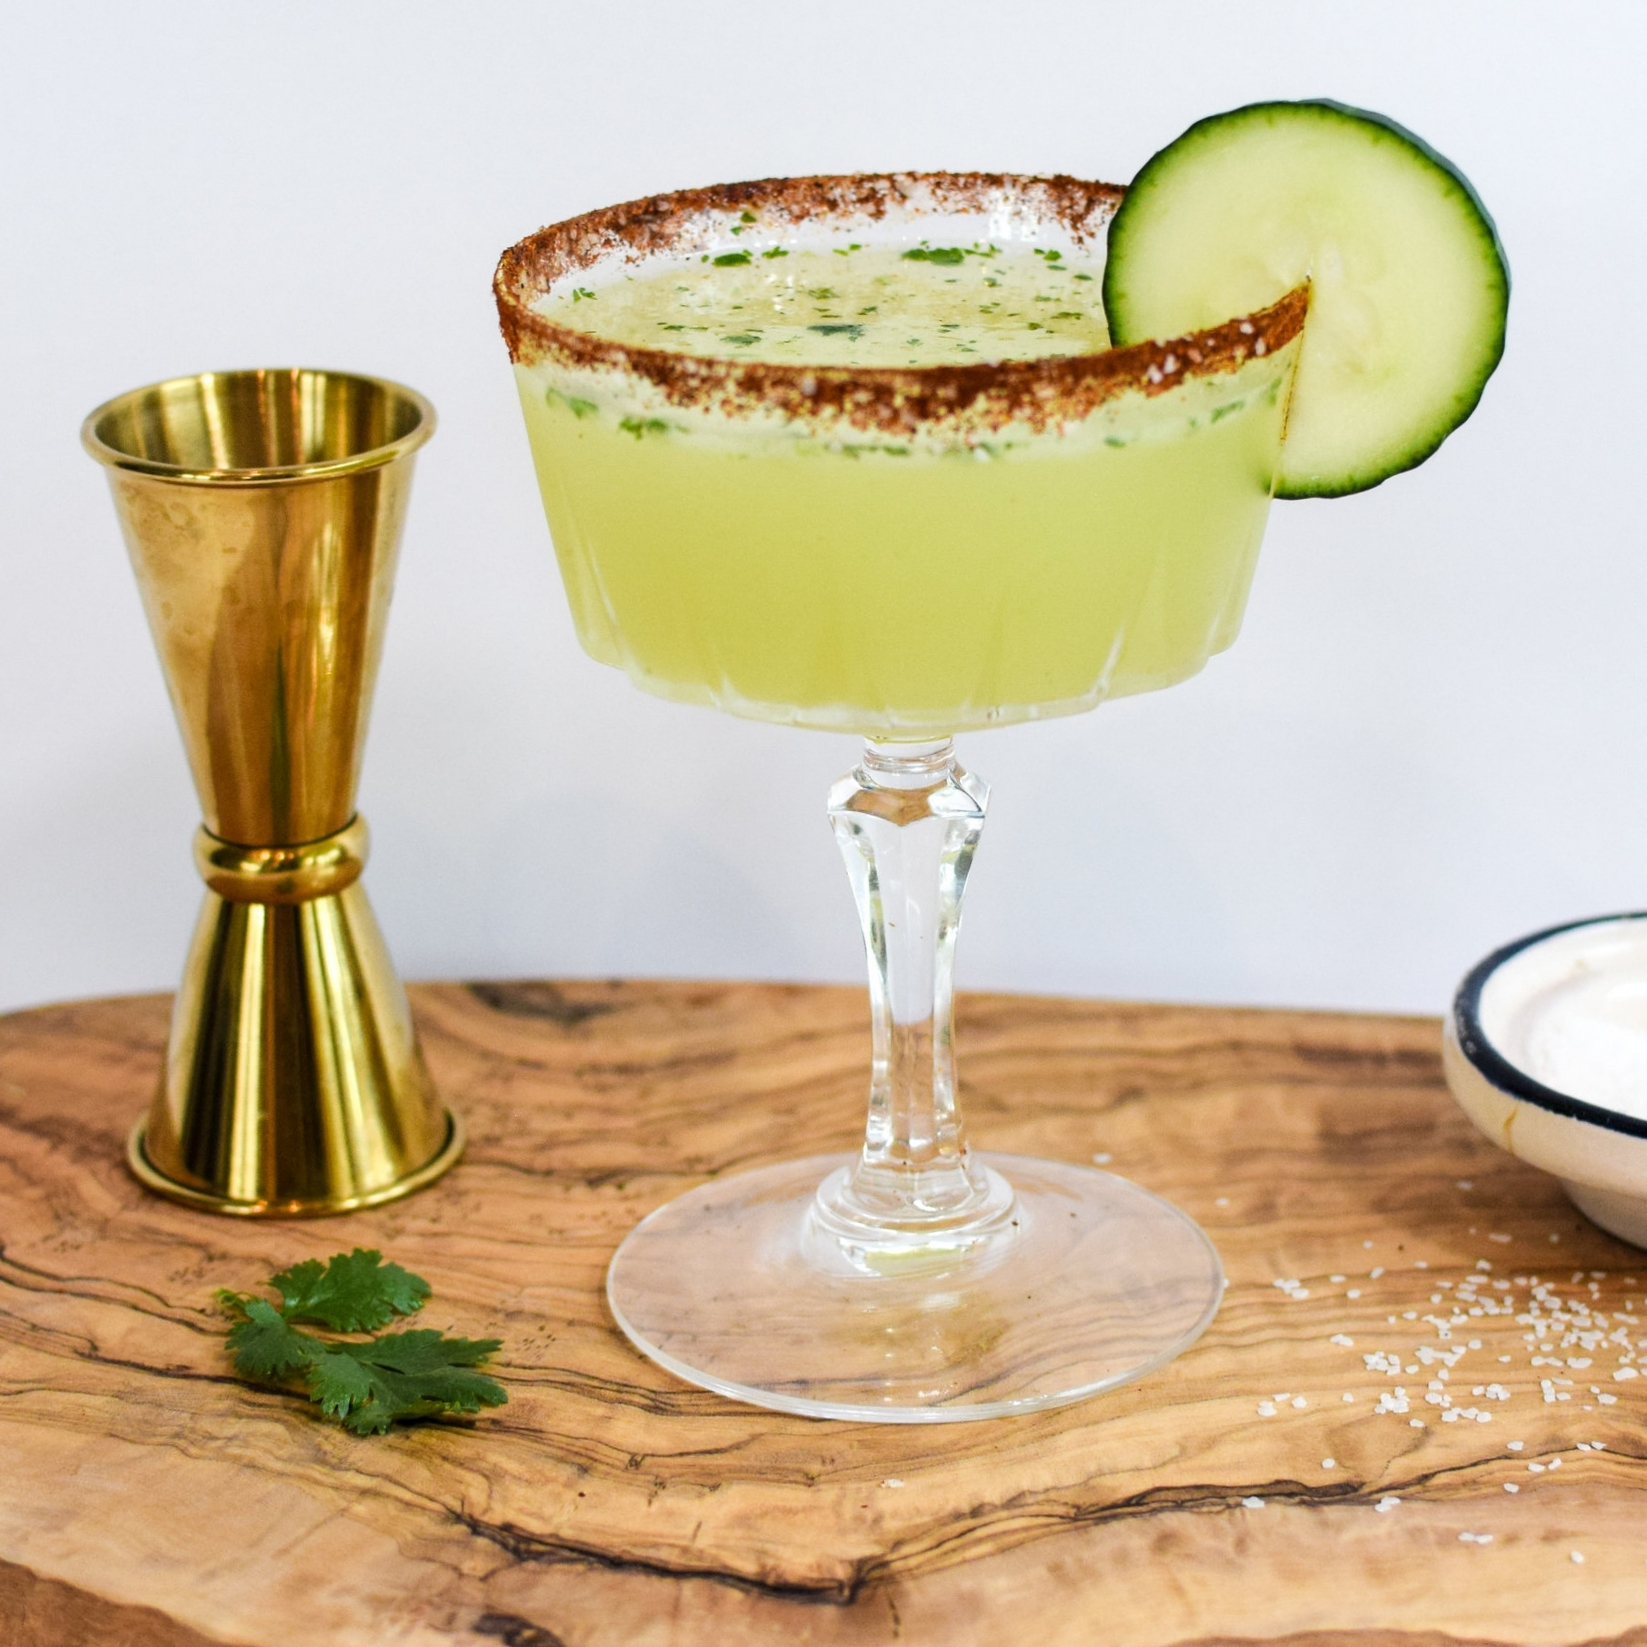 CUCUMBER MARGARITA - Ingredients:2oz. El Jimador Blanco Tequila1oz. Fresh Lime Juice1oz. Simple Syrup.75oz Triple Sec (or Grand Marnier)3 - 4 Slices of cucumber for muddling3-4 Slices of Jalapeno (optional)1 length-wise slice of cucumber for garnishingDirections:1. Add the 3 - 4 cucumber slices and jalapeno to your tin and muddle.2. Add tequila, lime juice, simple syrup and triple sec, dry shake for 15 seconds3. Before adding ice to your tin garnish your drinking glass by putting cucumber slice in glass and slowly adding ice as your wrap cucumber around the inside of glass4. Add ice to your tin, shake until chilled.5. Strain and pour